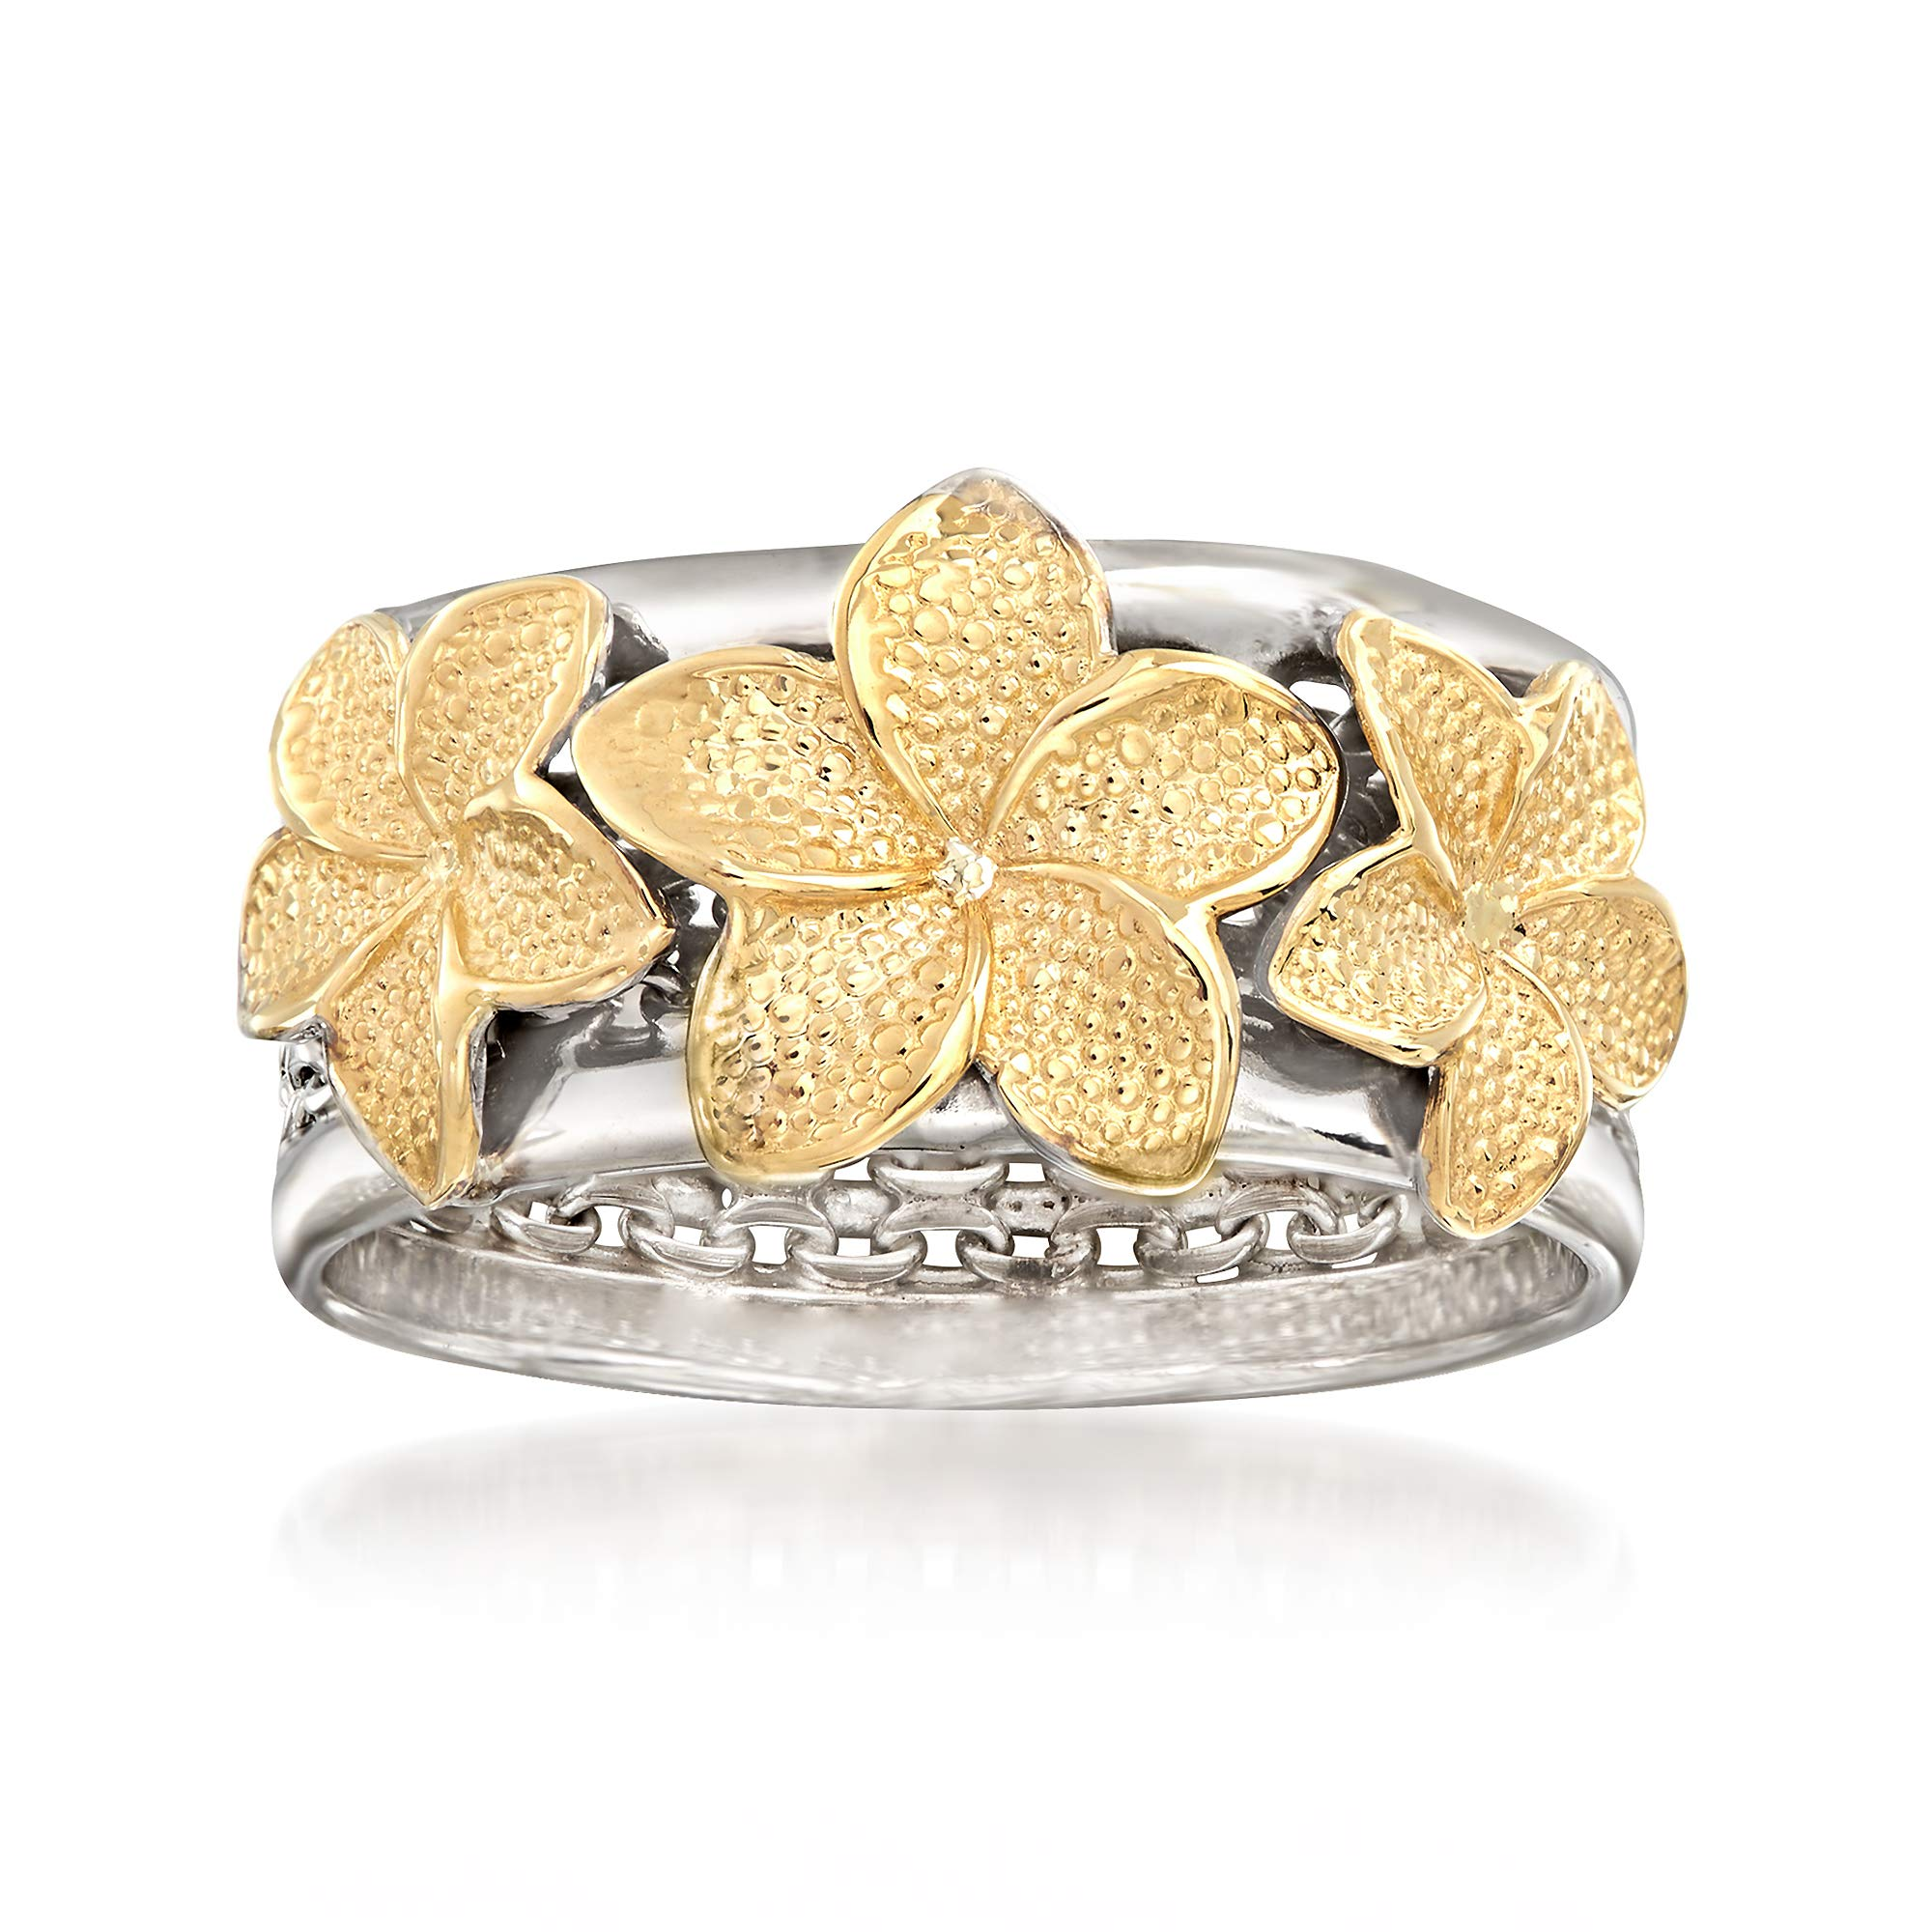 Ross-Simons Sterling Silver and 14kt Yellow Gold Floral Bismark-Link Ring by Ross-Simons